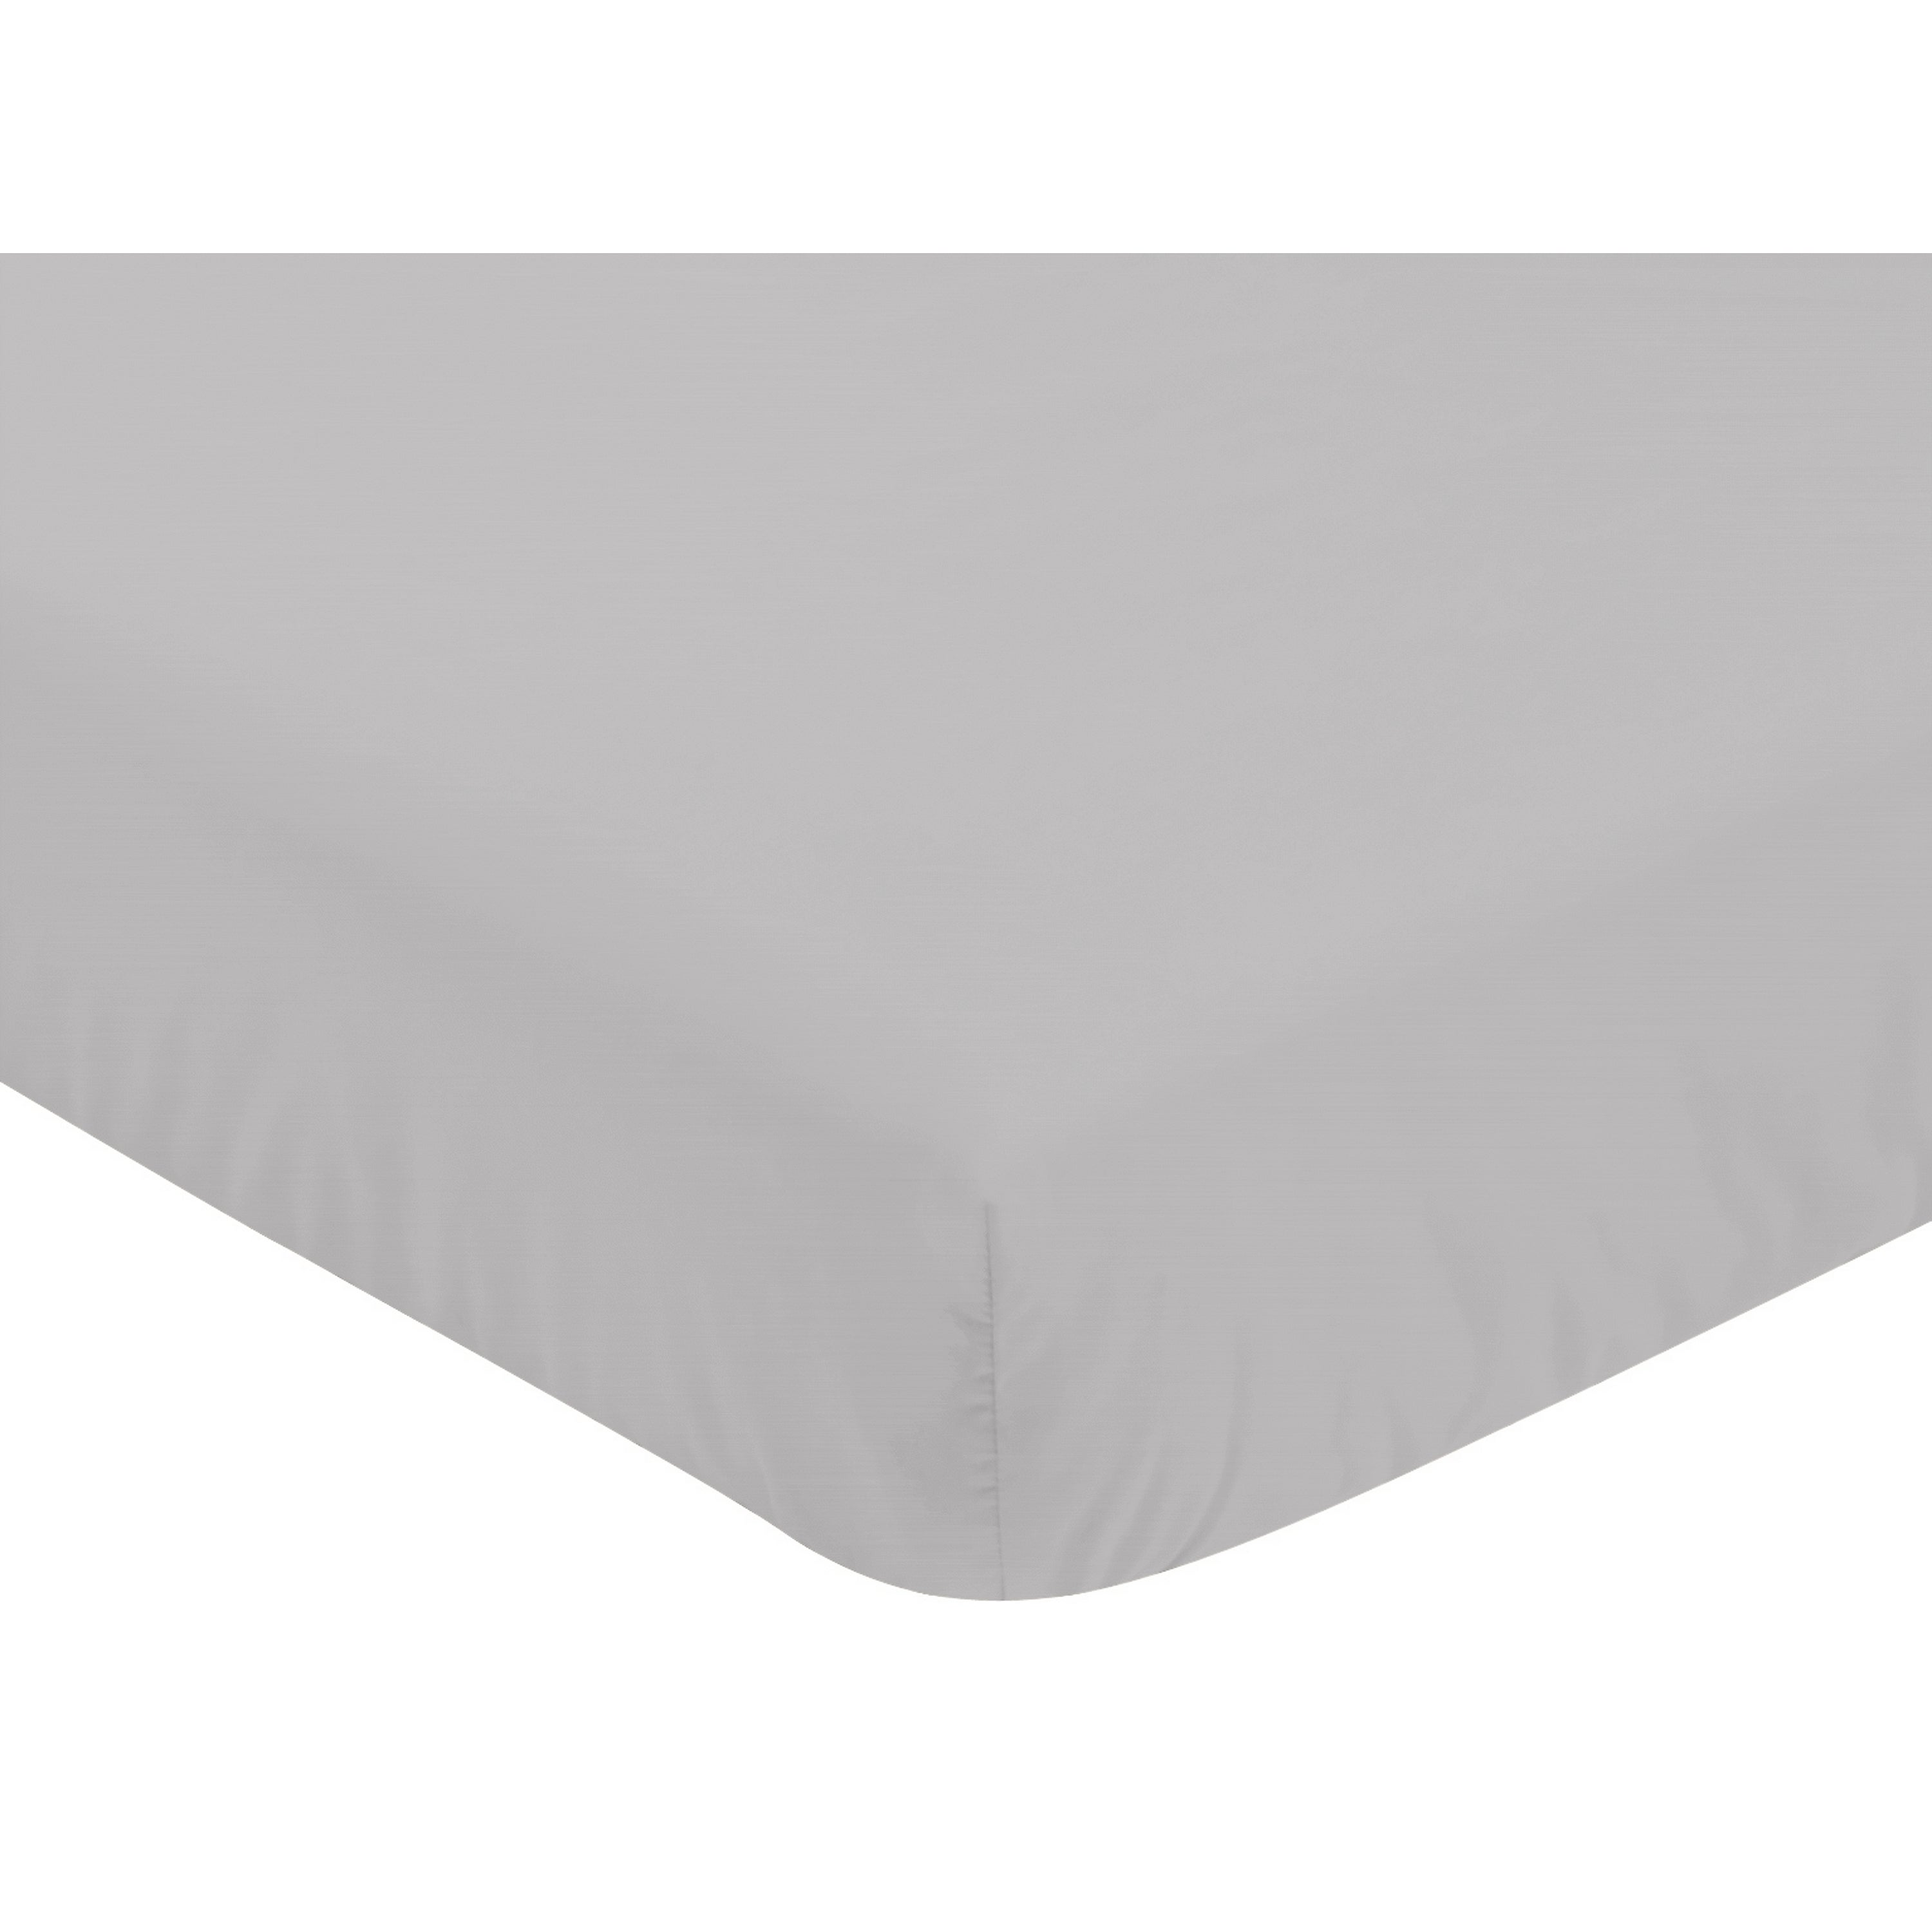 JoJo Designs Fitted Crib Sheet for Grey, Navy Blue and Mint Woodland Arrow Baby/Toddler Bedding Set Collection - Grey